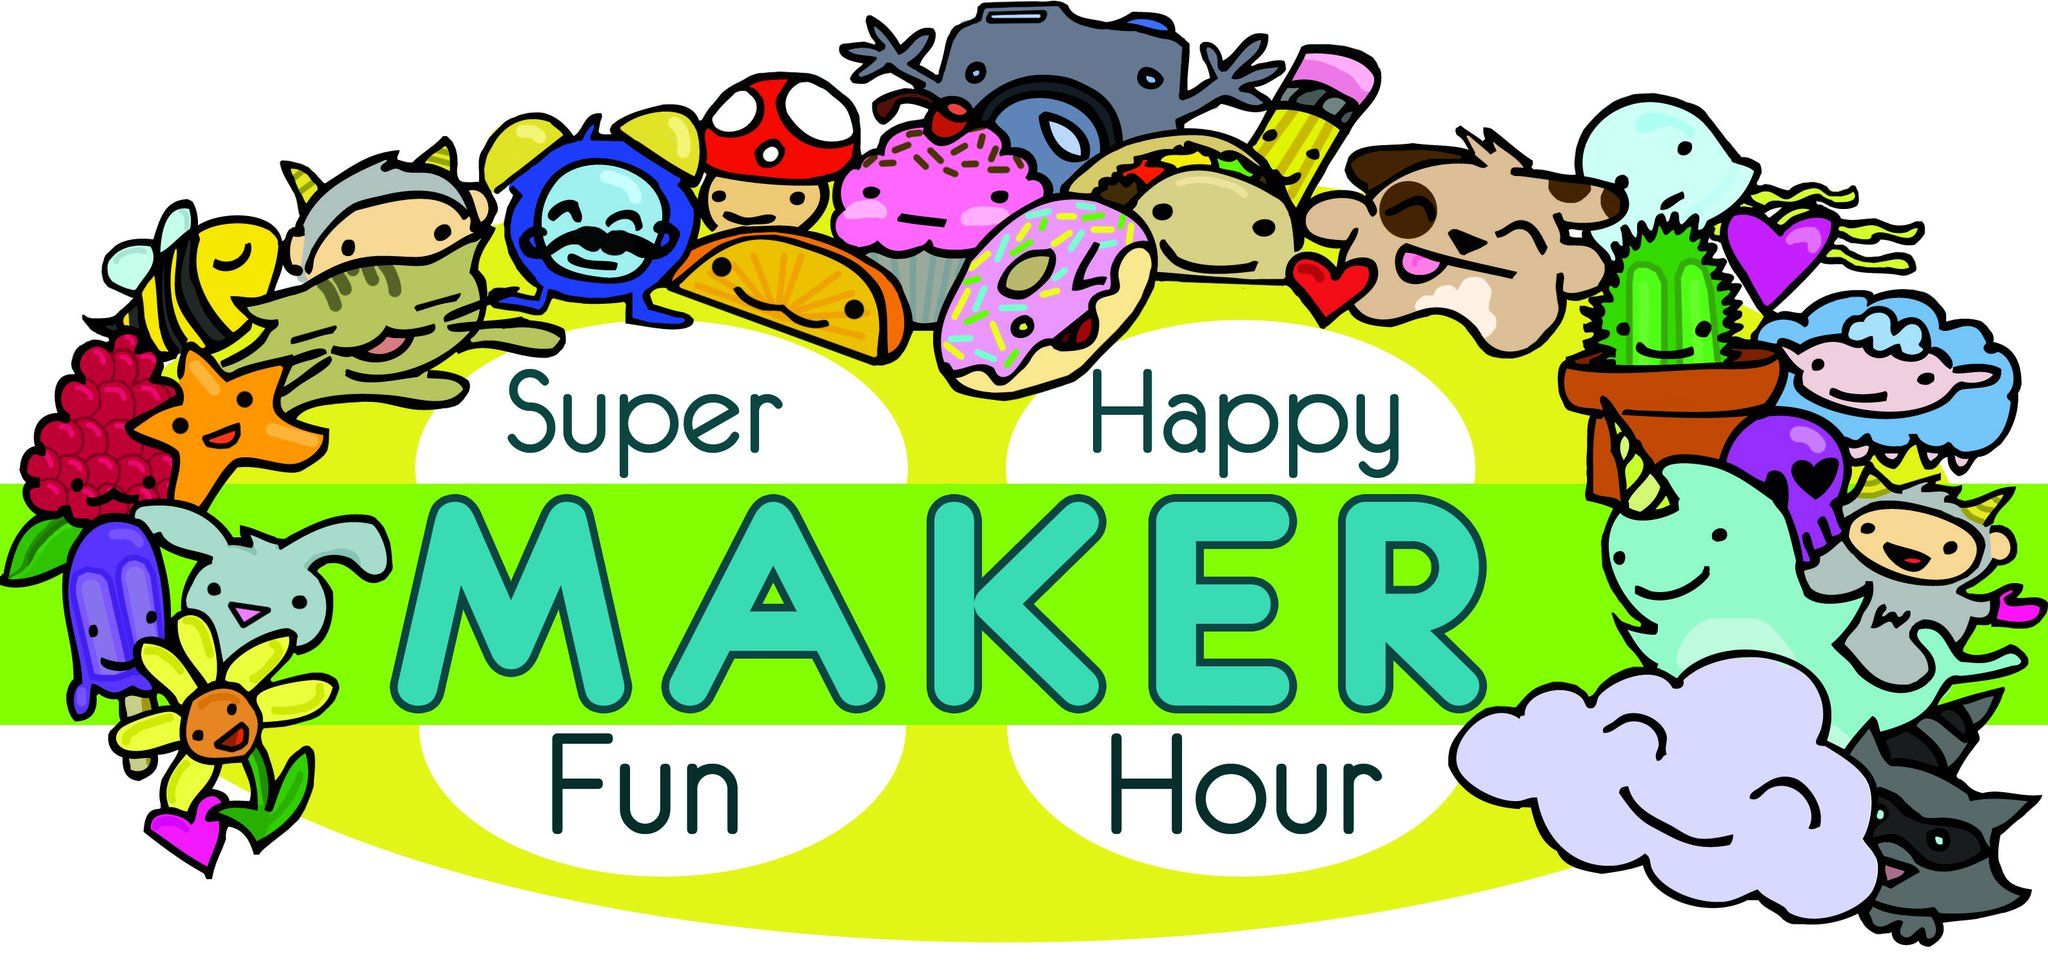 Super Happy Maker Fun Hour